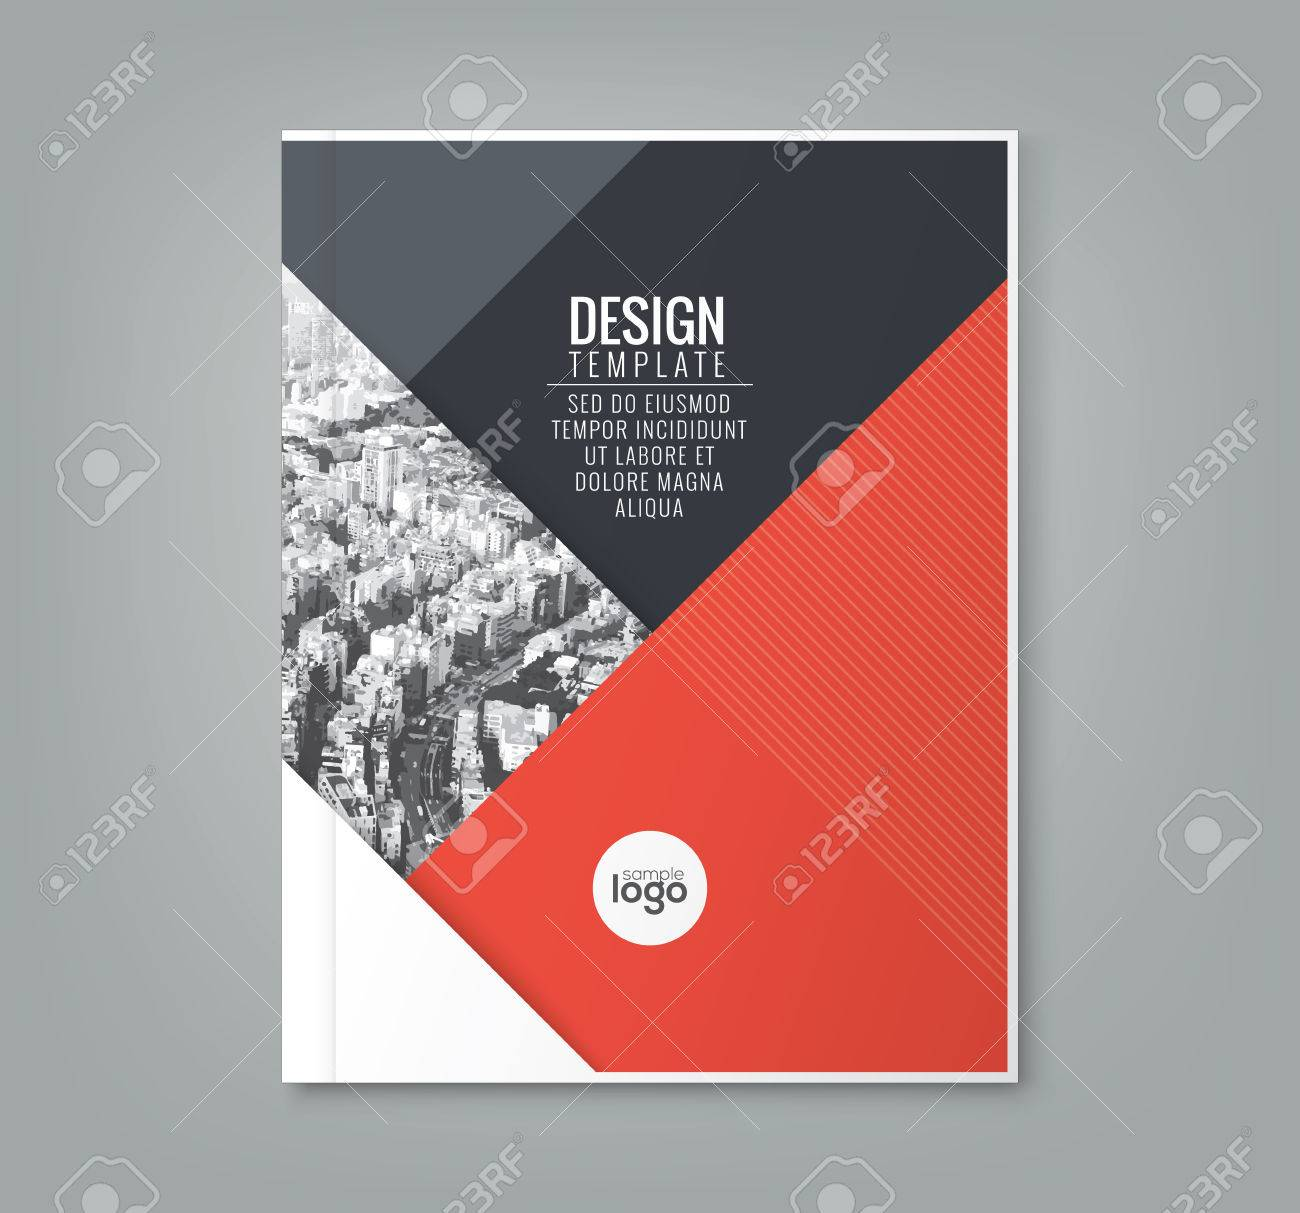 Minimal Simple Red Color Design Template Background For Business – Business Annual Report Template